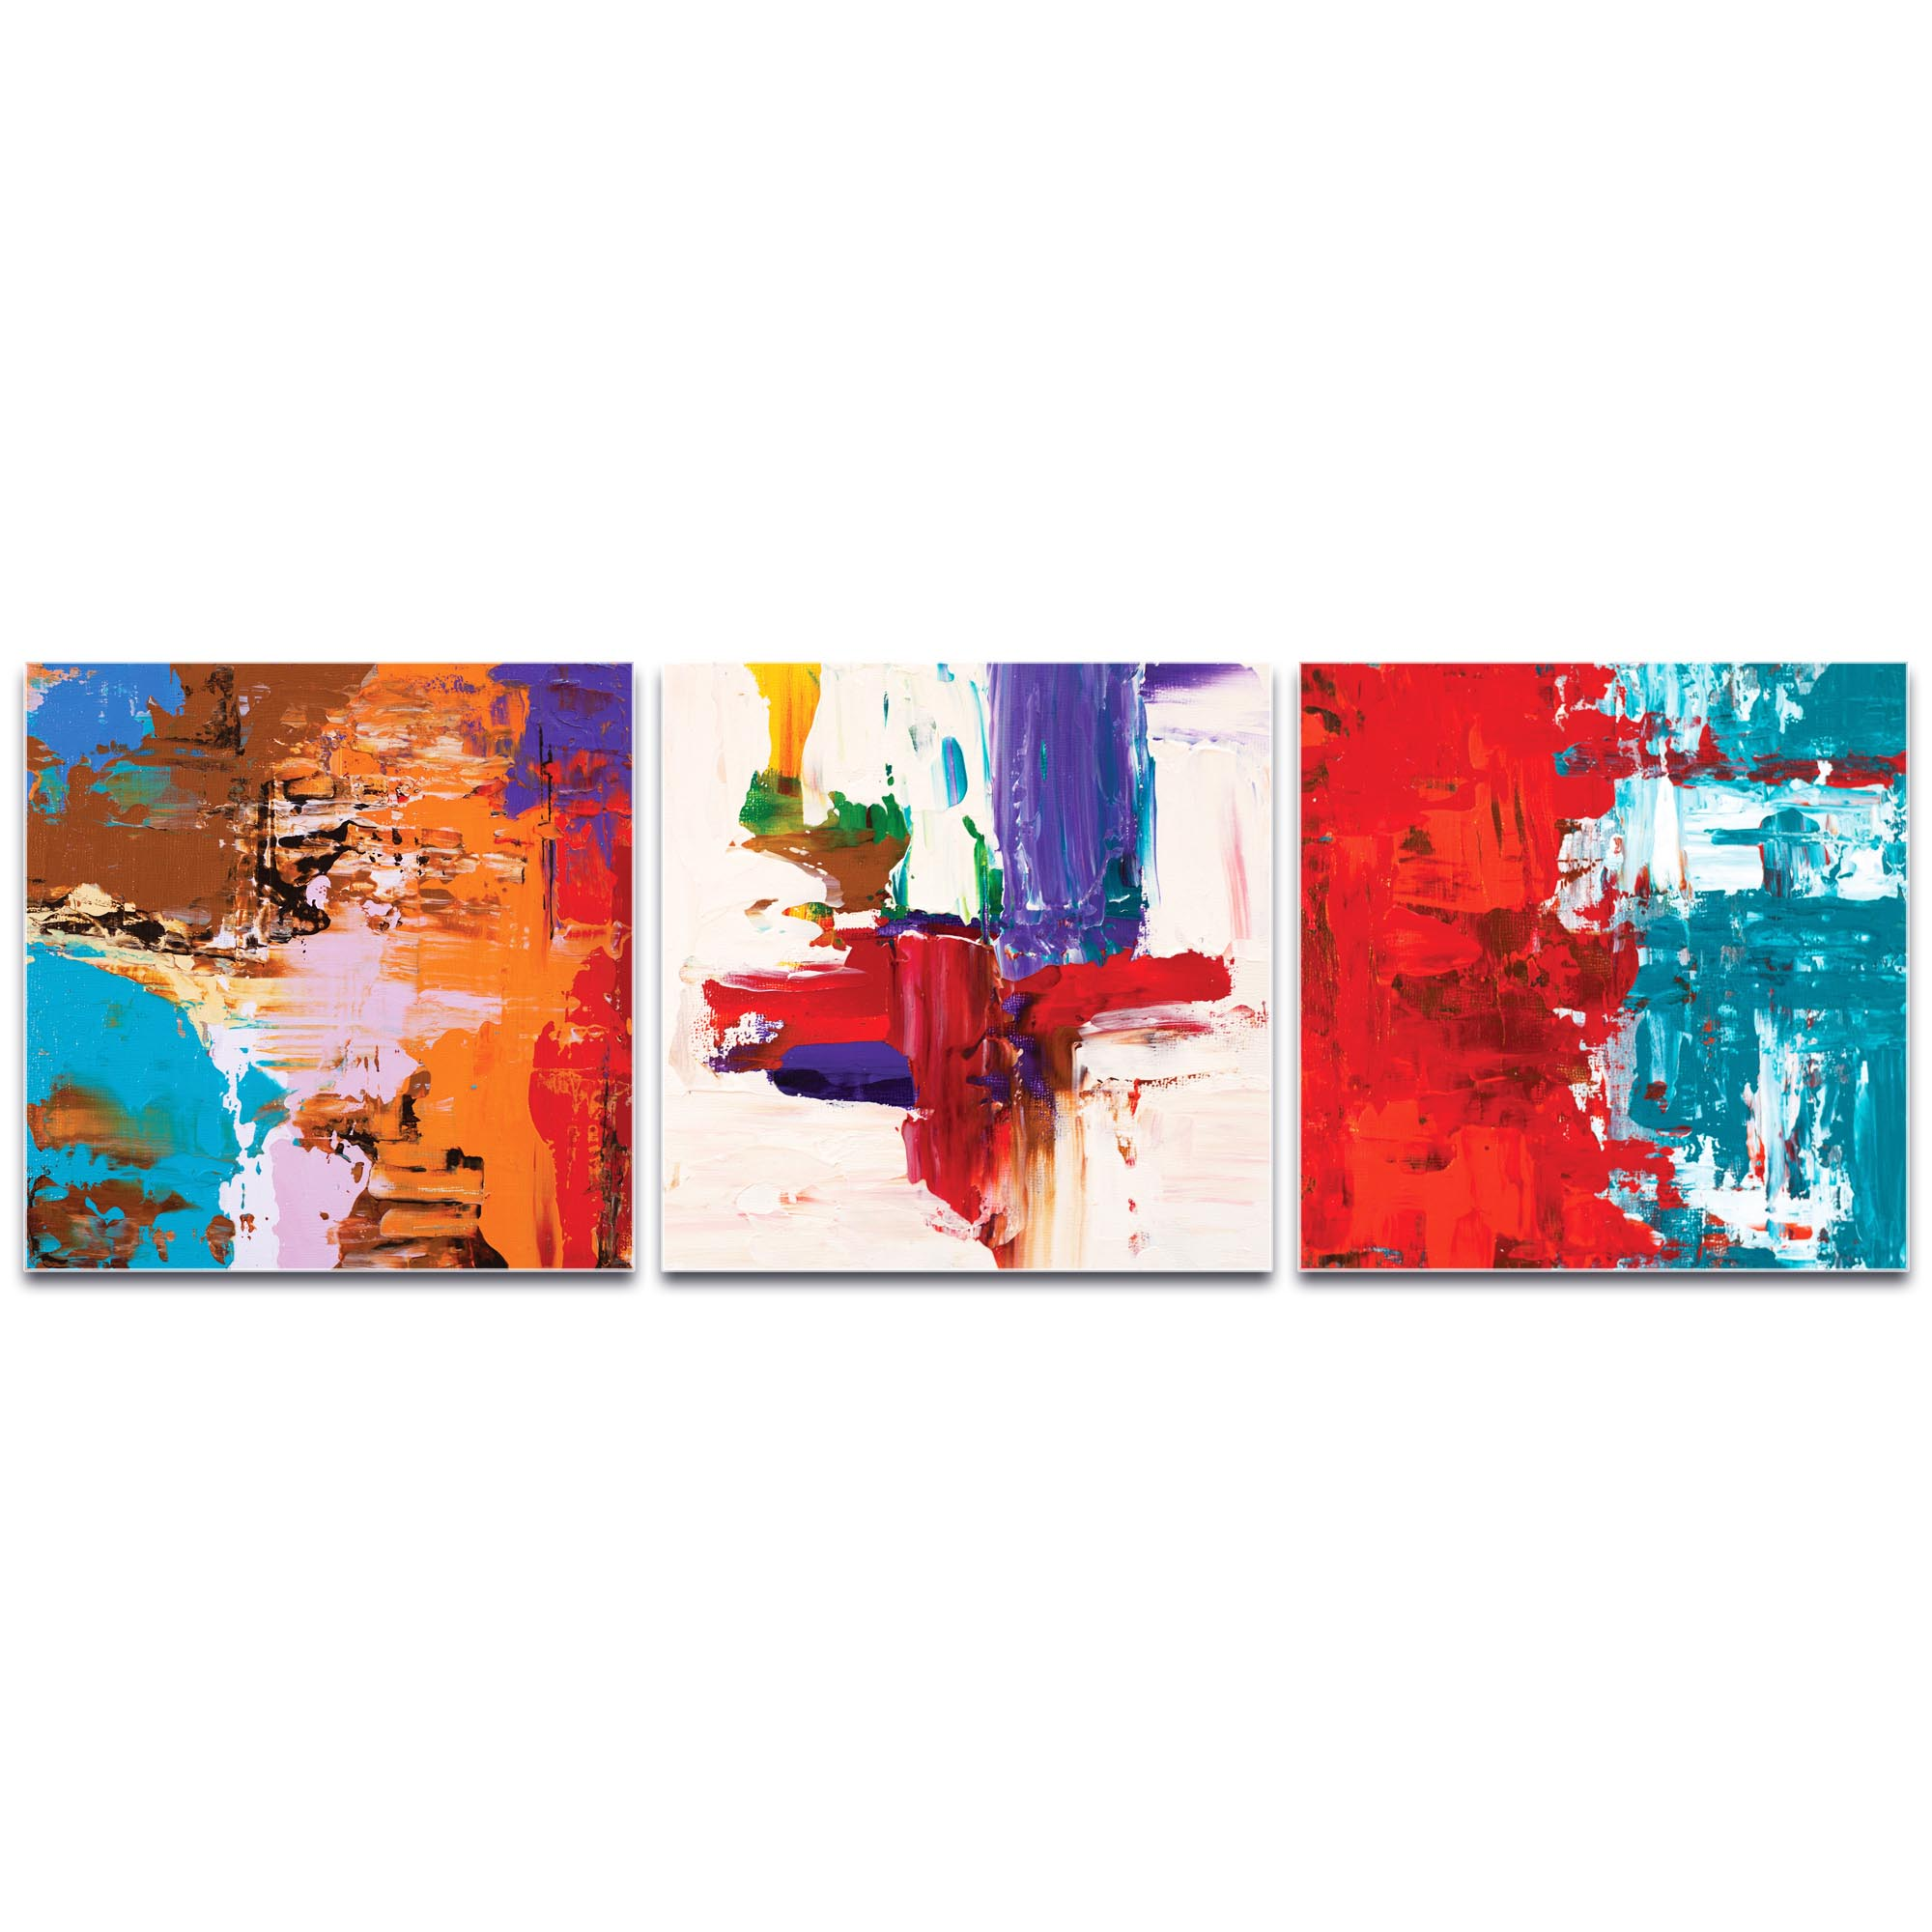 Abstract Wall Art 'Urban Triptych 5' - Urban Decor on Metal or Plexiglass - Image 2